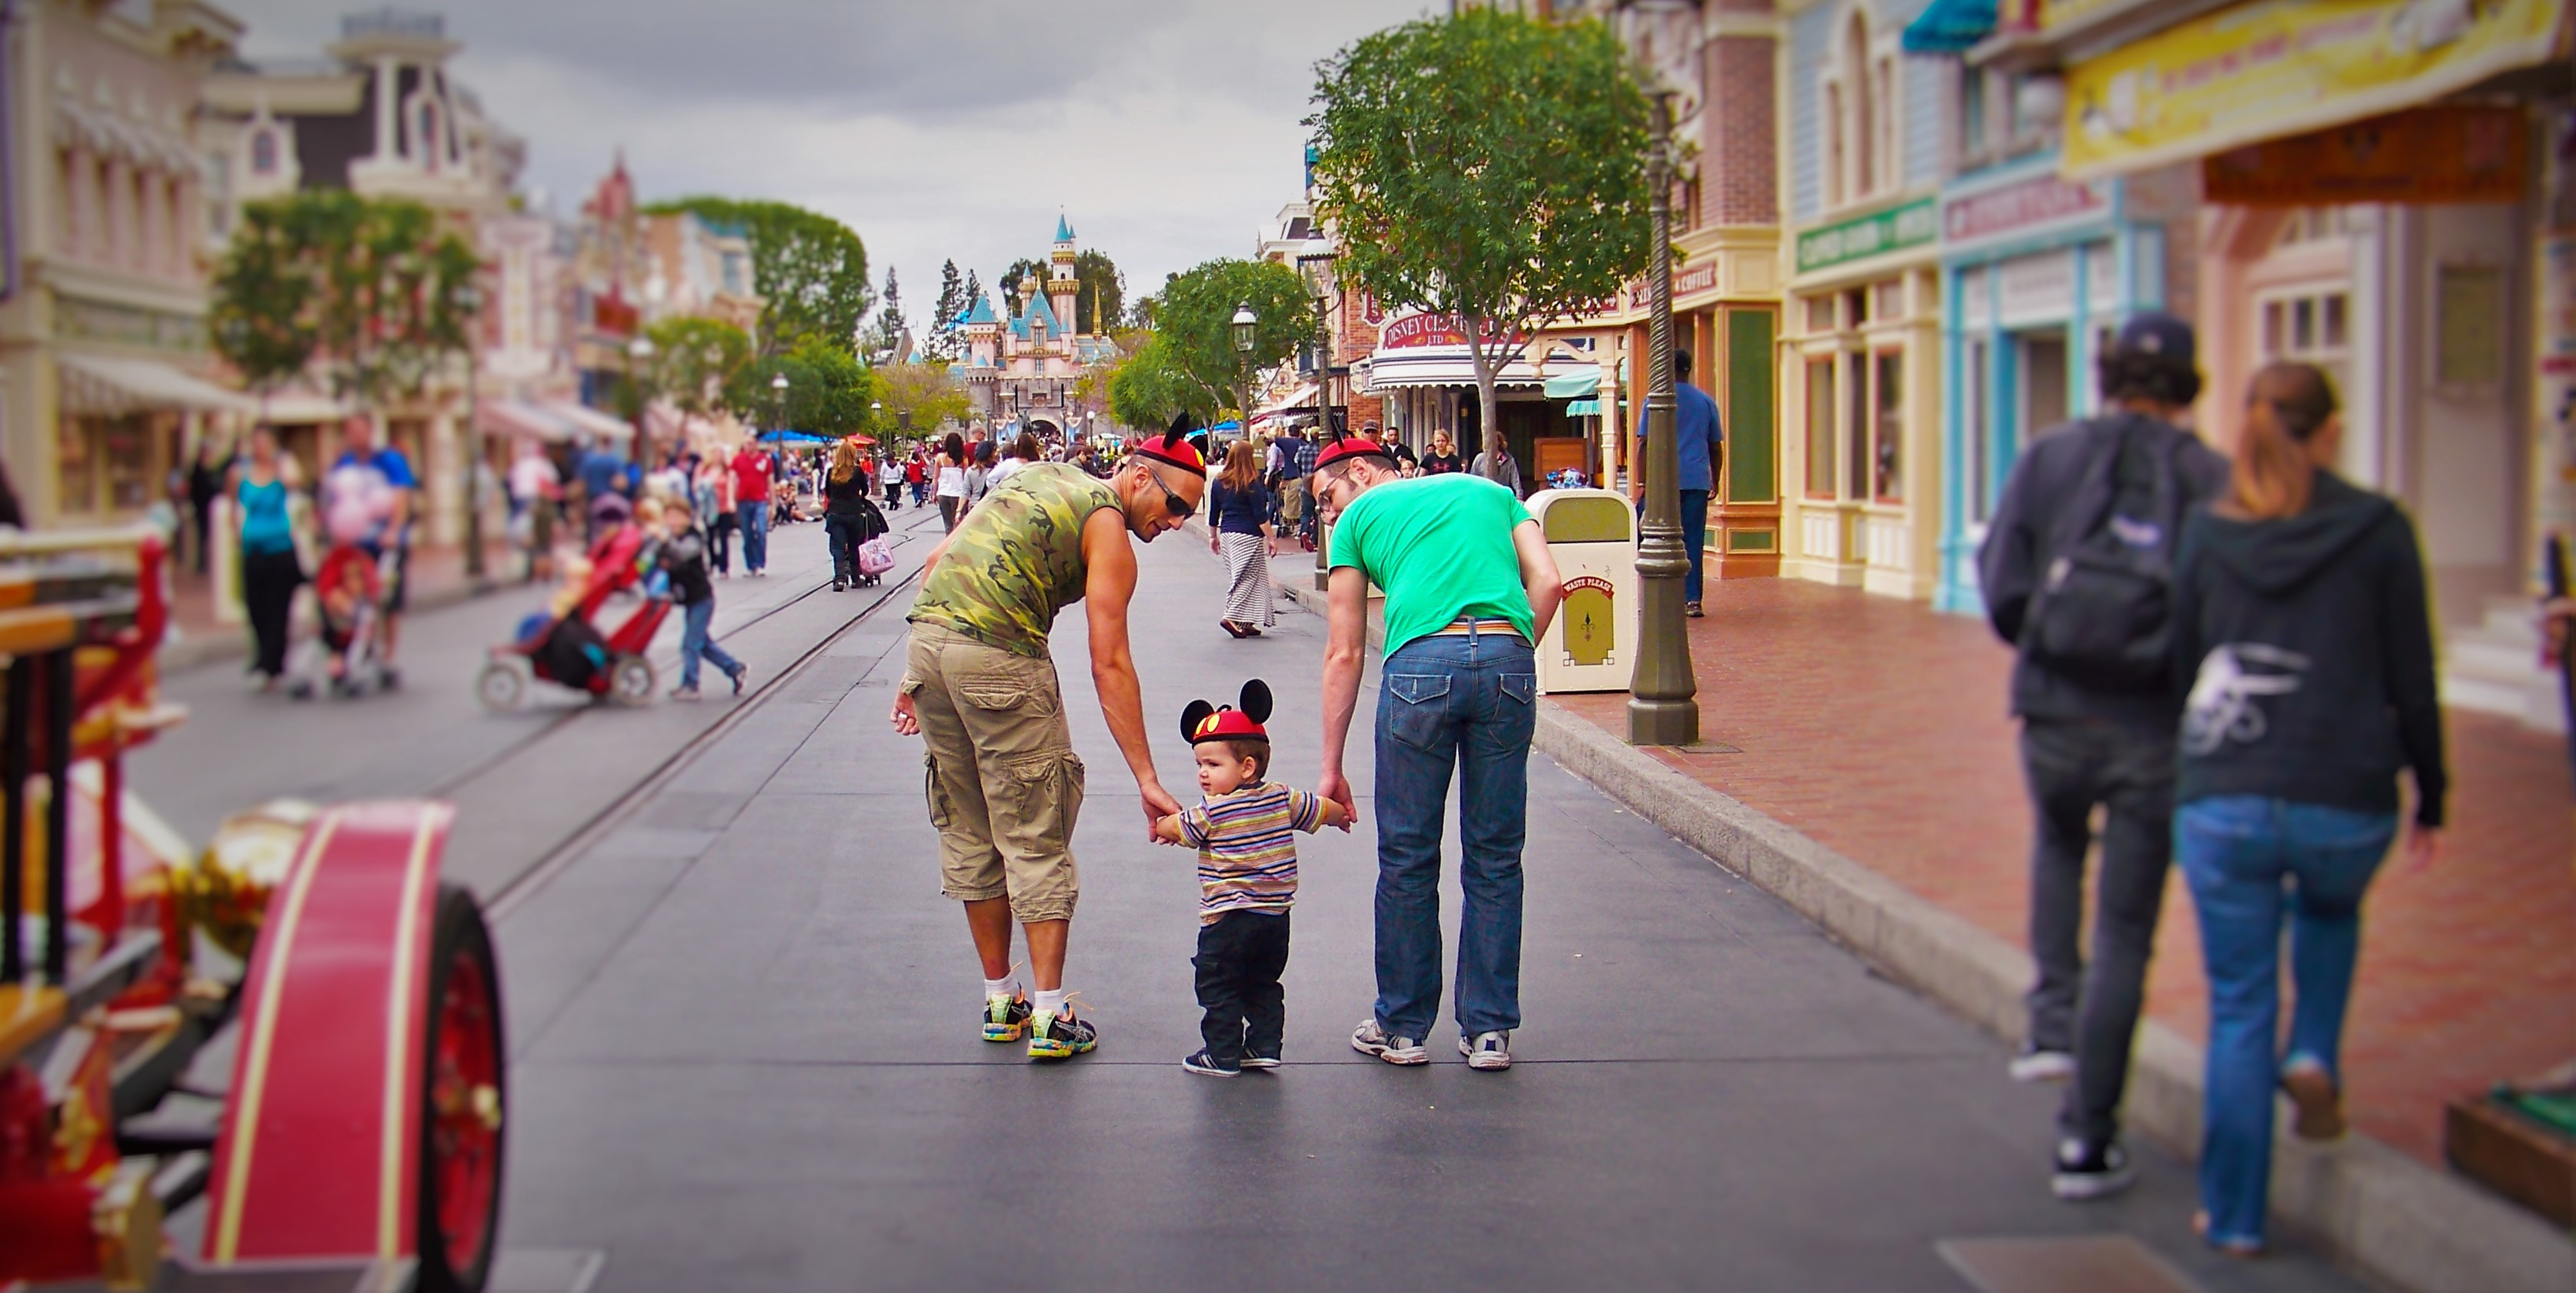 Taylor Family Mainstreet USA Disneyland Header